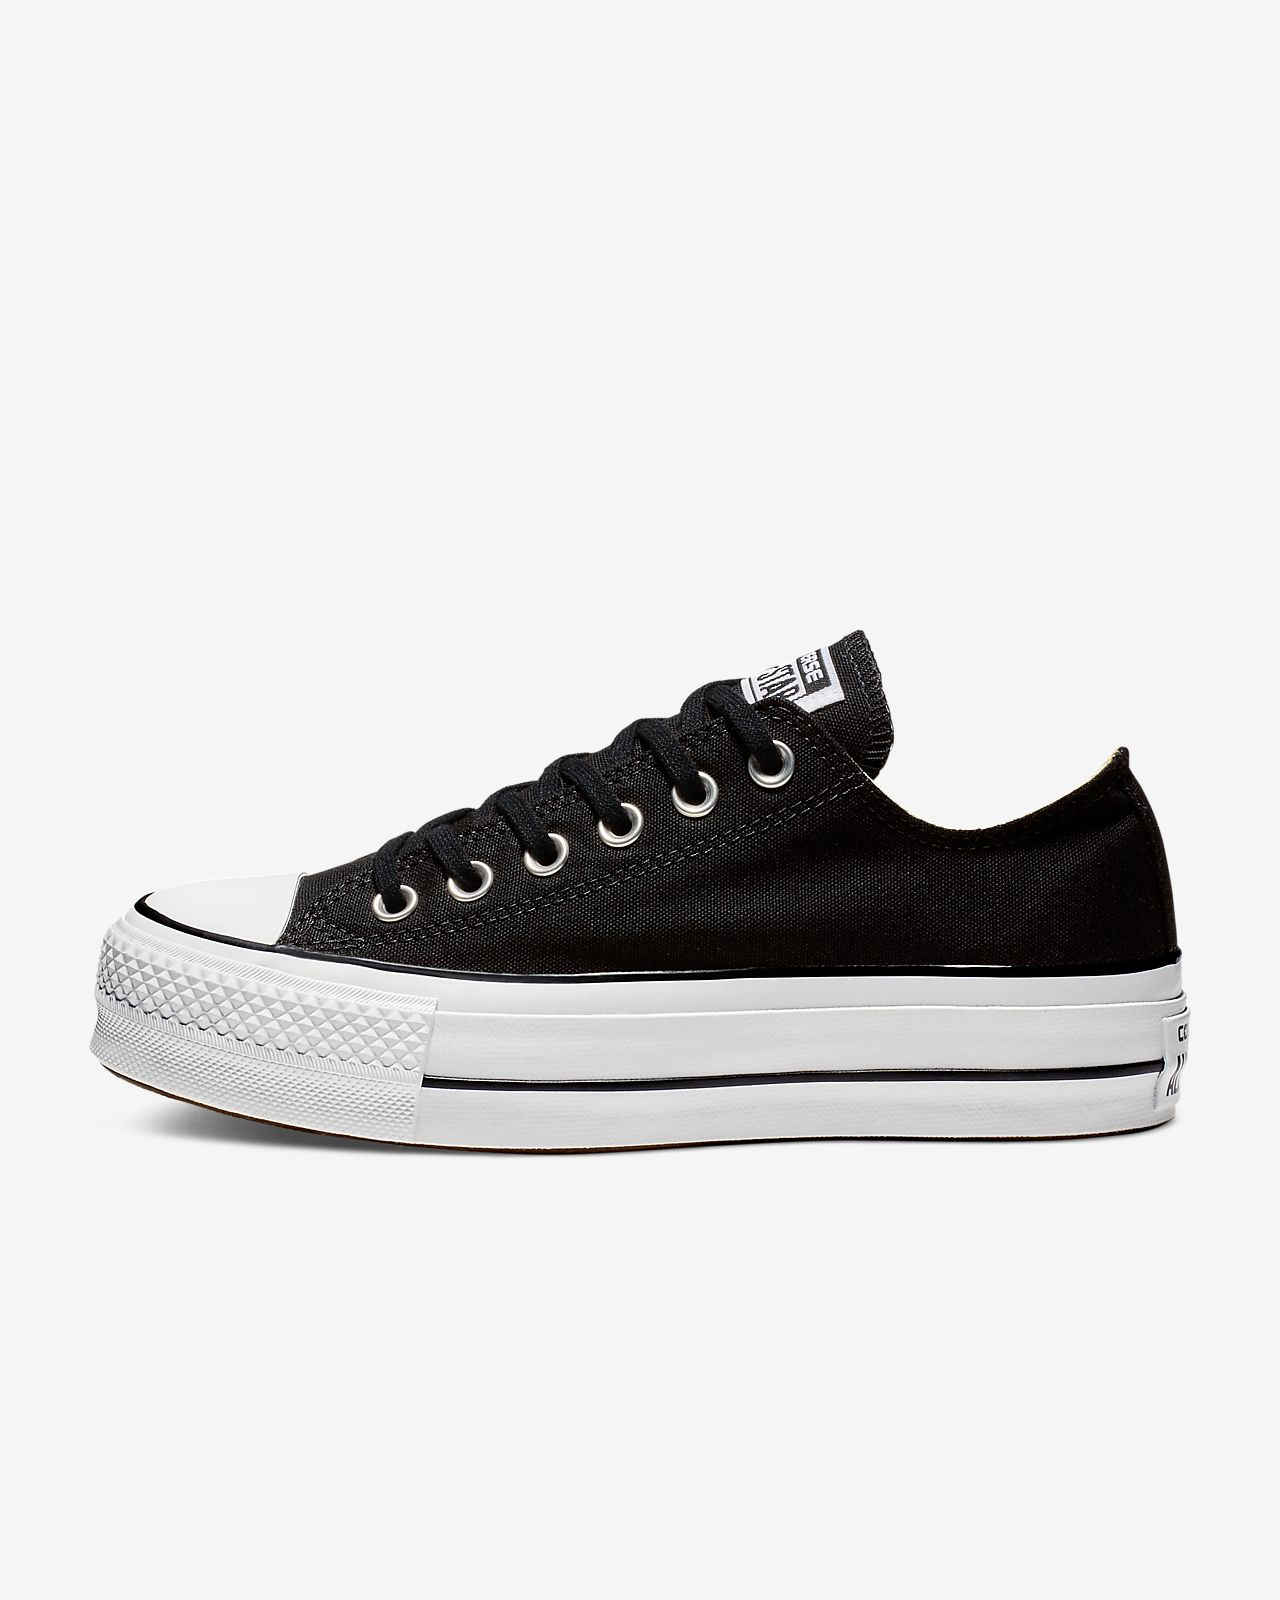 Converse Chuck Taylor All Star Lift Low Top Women's Shoe